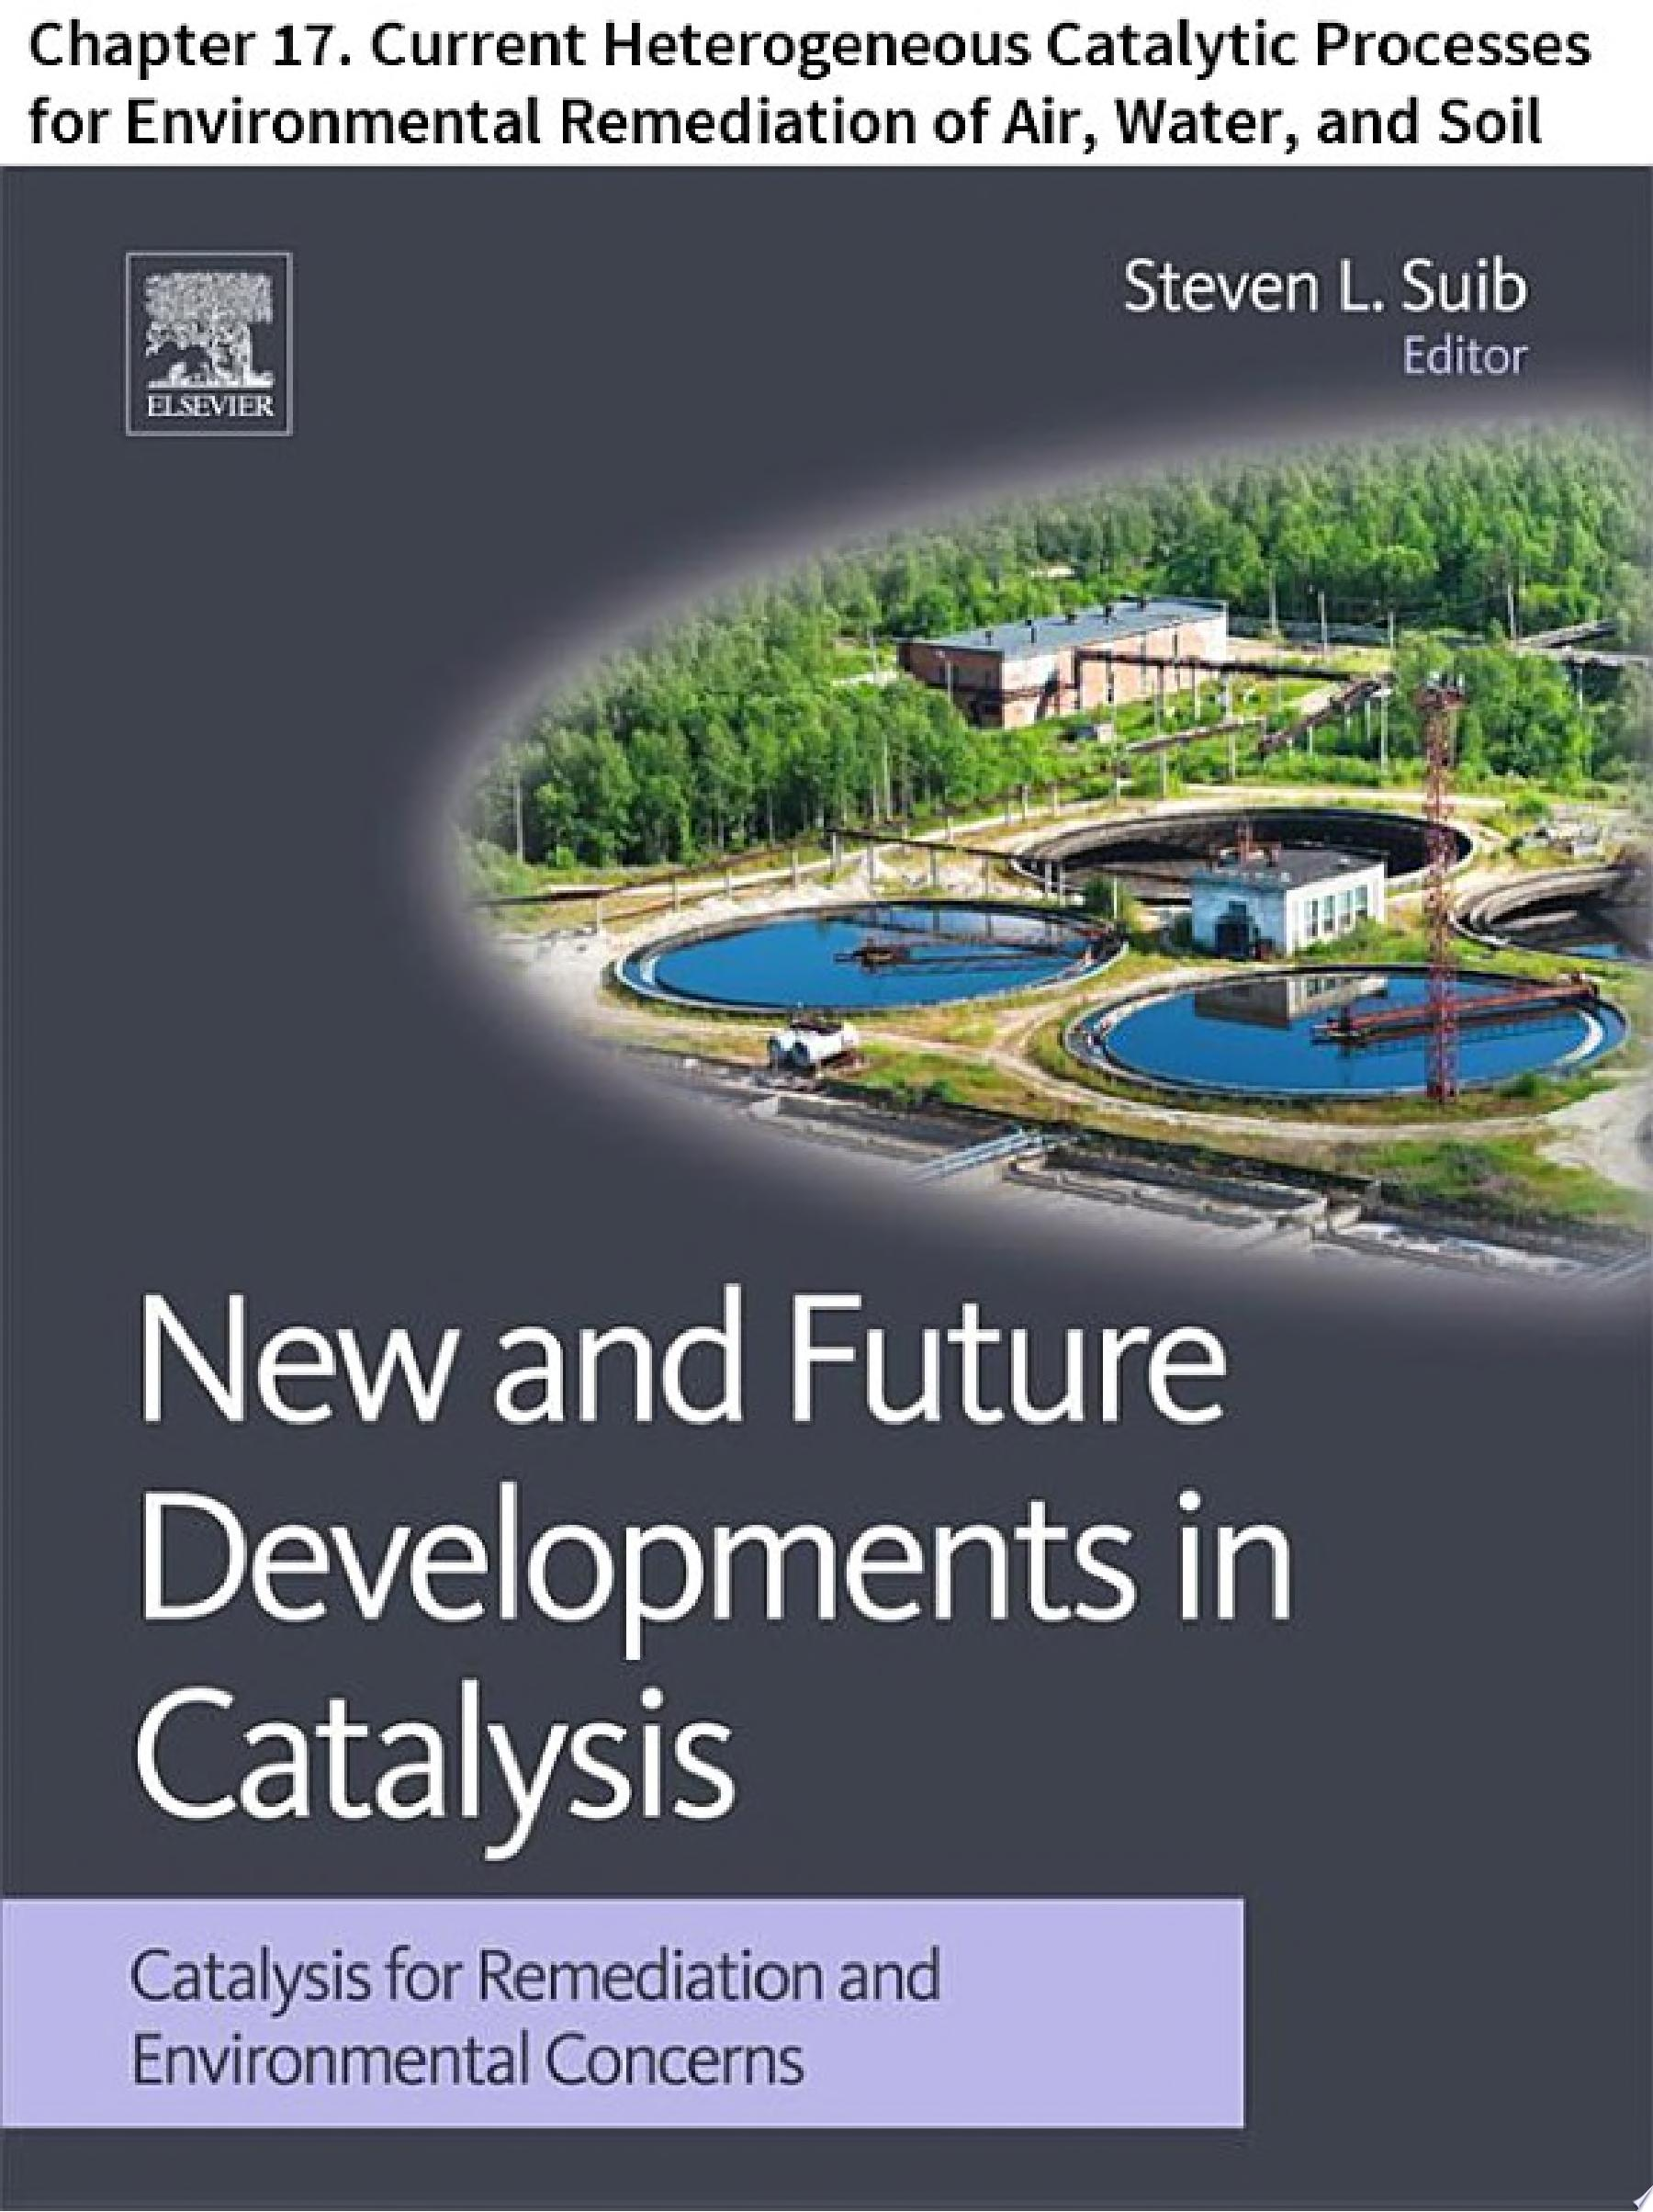 New and Future Developments in Catalysis